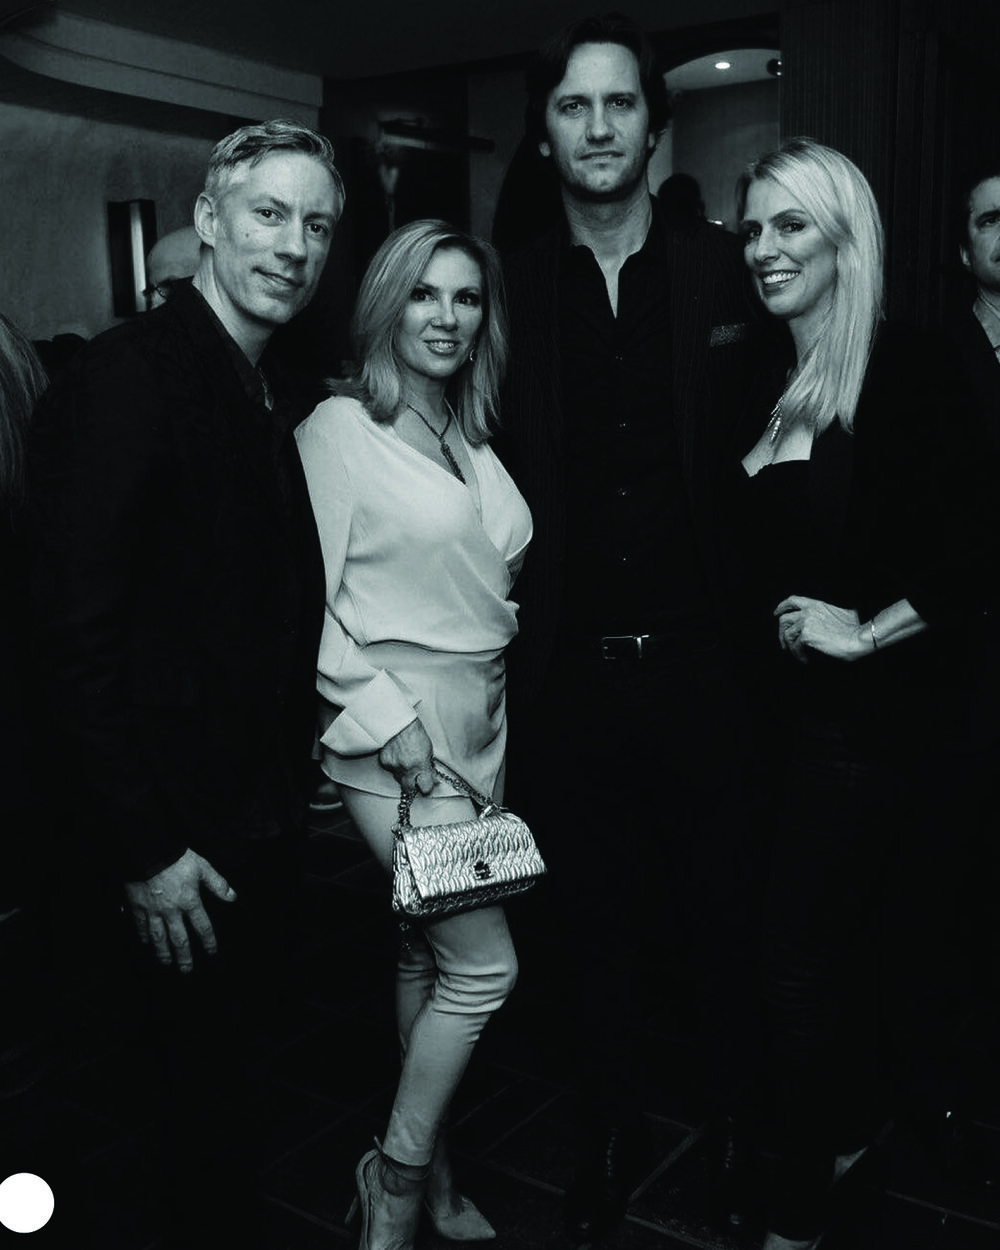 """PAGE6: RAMONA SINGER @ POMONA - The """"Real Housewives of New York"""" star, 62, dined at Pomona with ex-girlfriend of Tom D'Agostino, Missy Pool, and kept the night going at the restaurant's speakeasy, Savage Lounge, on Wednesday.FULL ARTICLE HERE"""